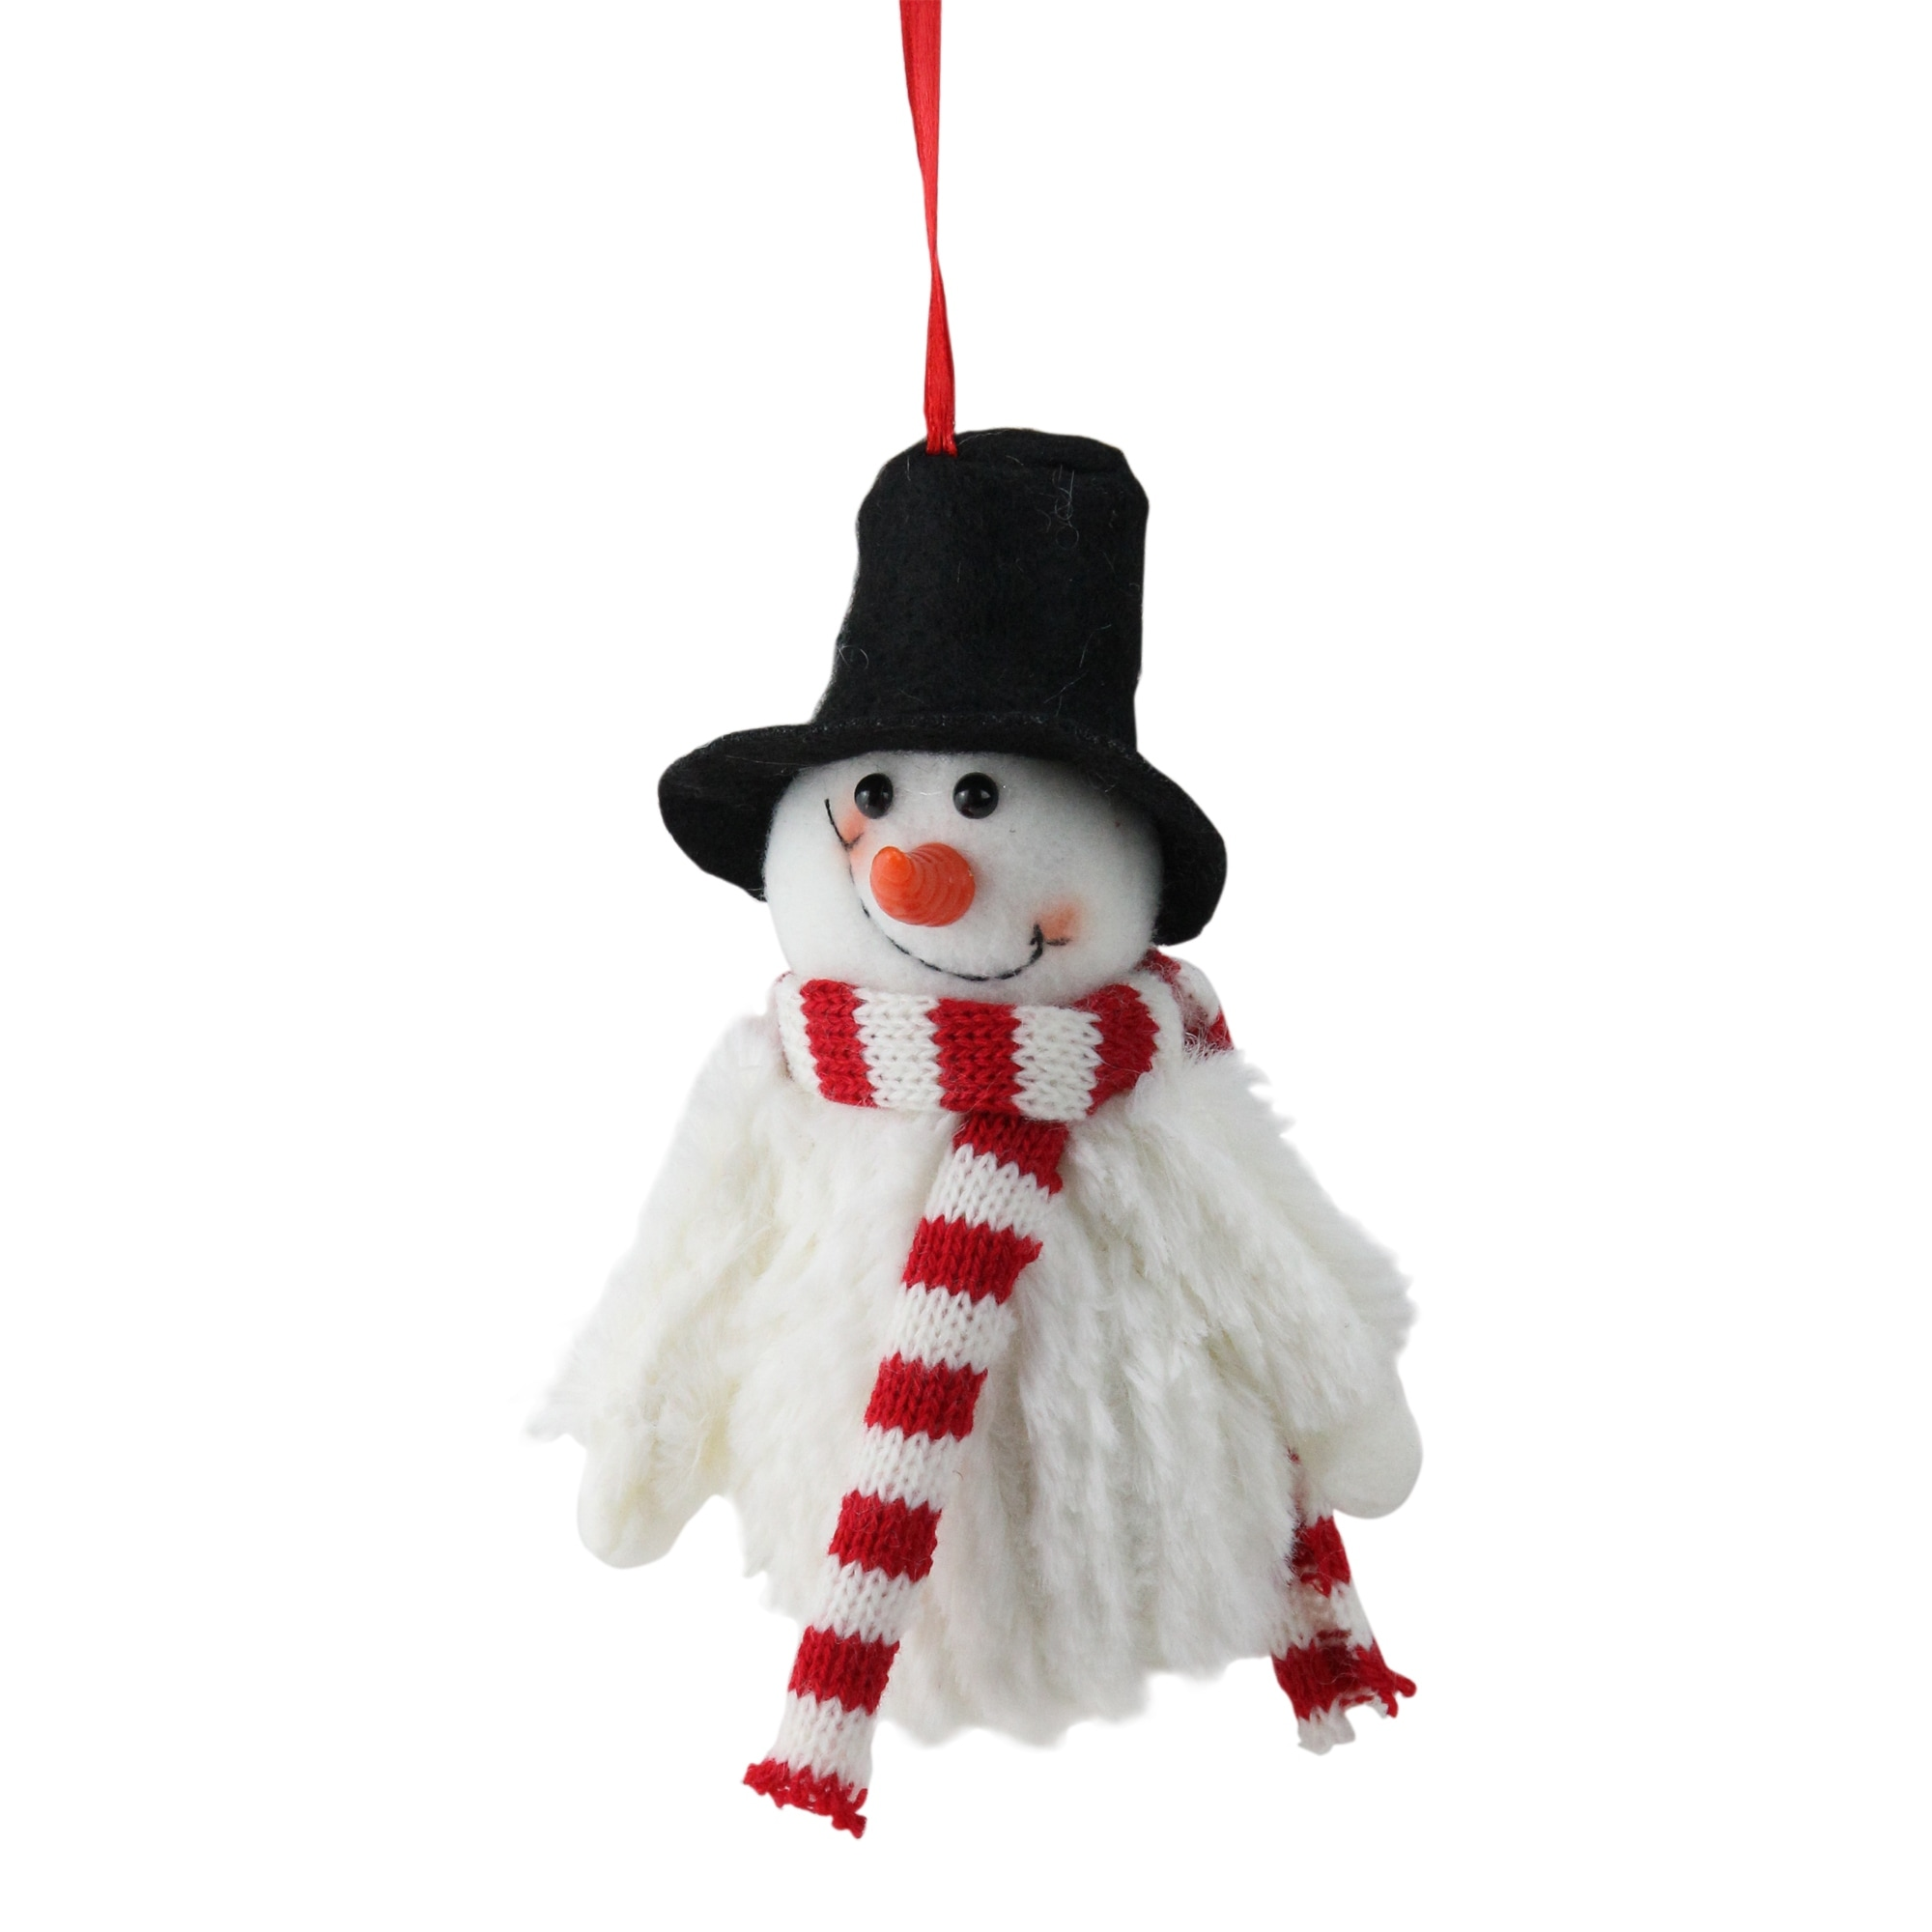 Christmas Top Hat Ornaments.5 Smiling Fuzzy Snowman With Top Hat And Striped Scarf Christmas Figure Ornament